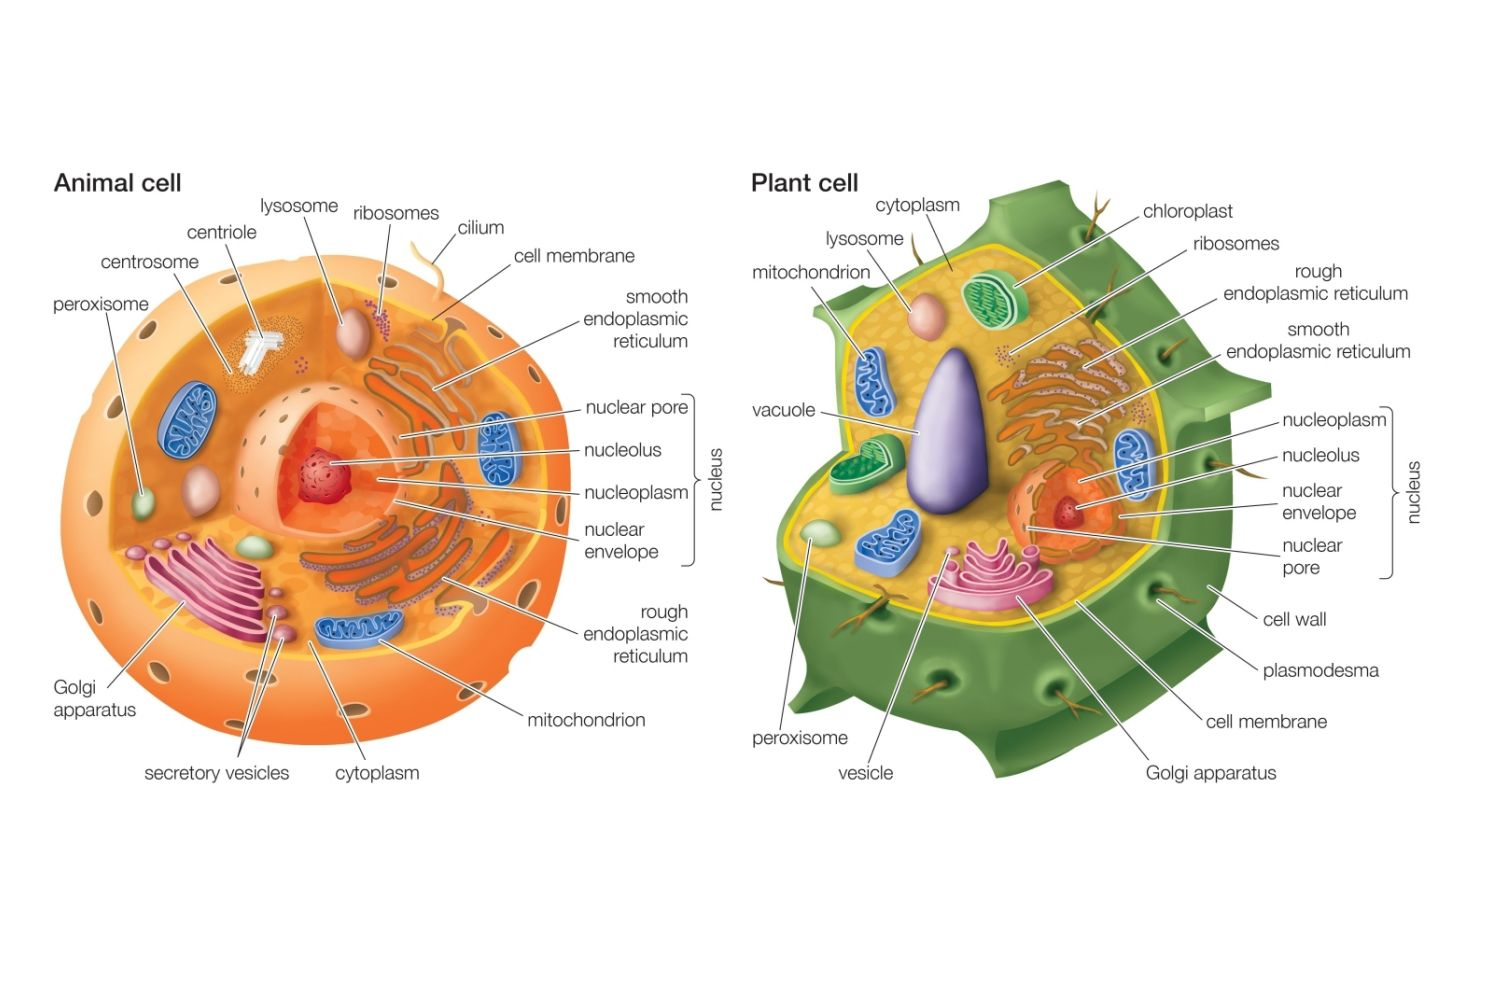 Essential differences between animal and plant cells ccuart Images